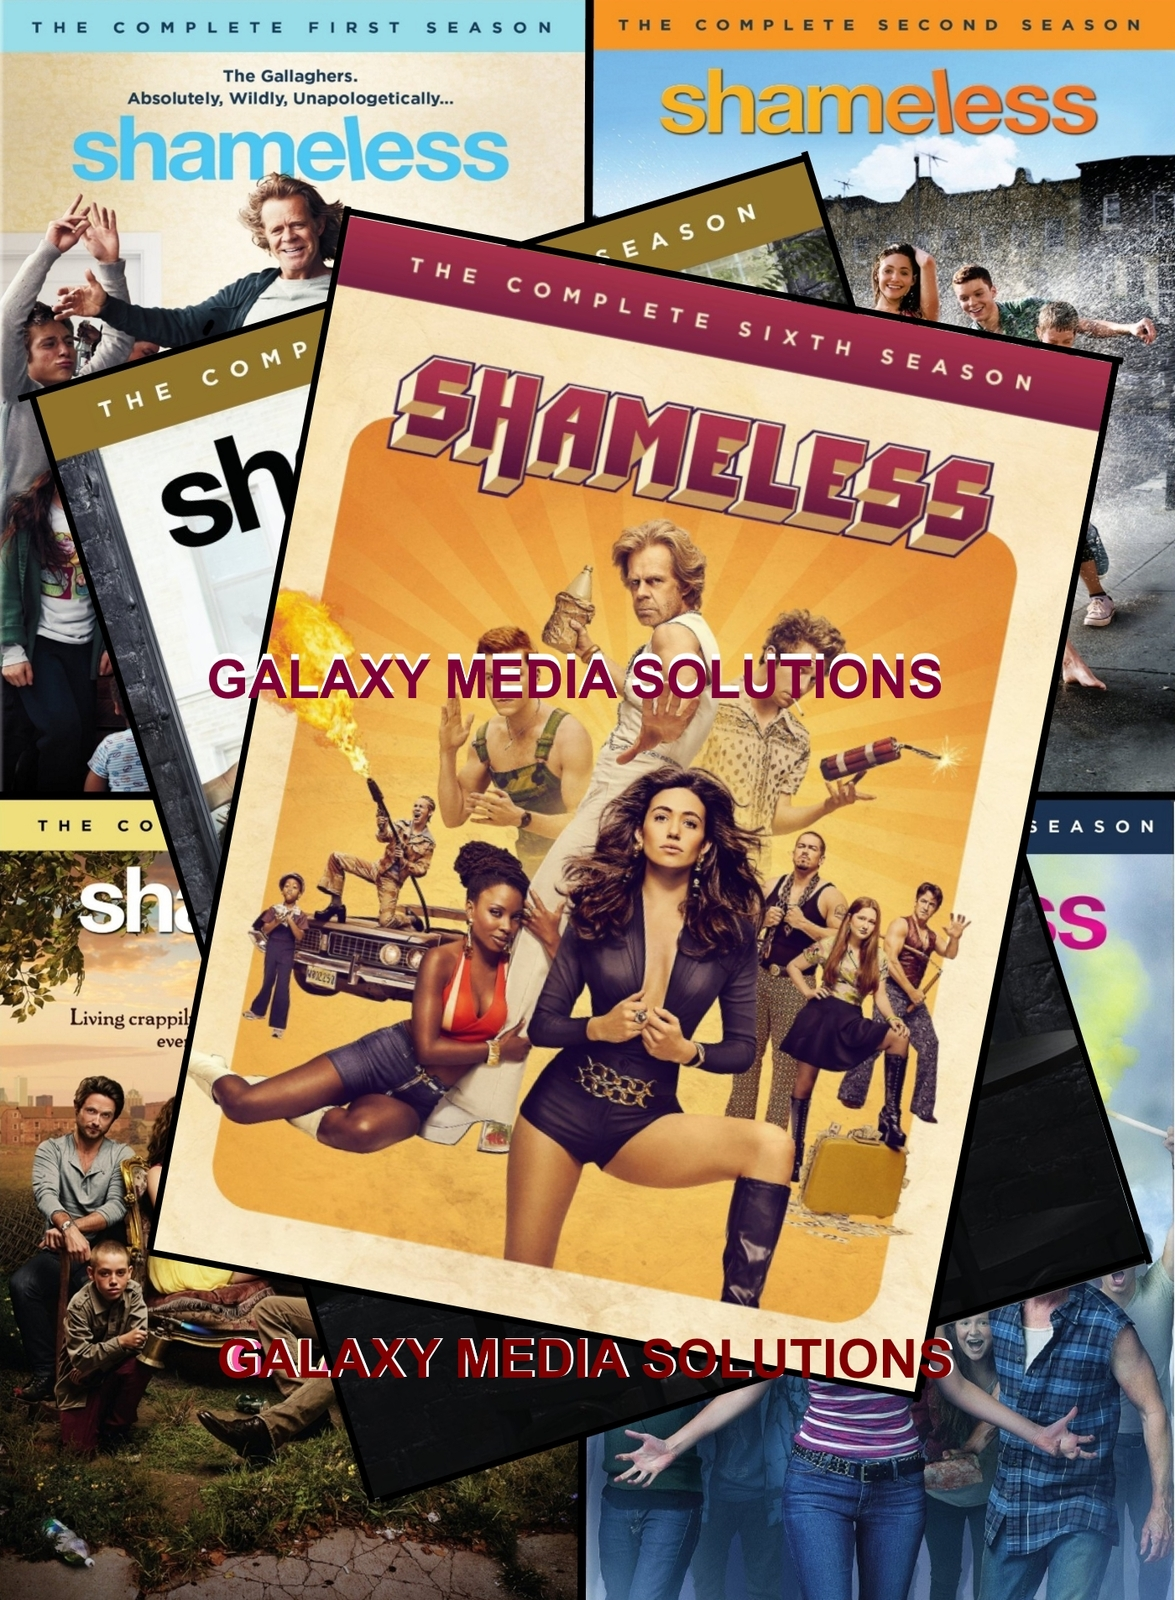 Shameless season one six 1 6 dvd bundle  9 disc  2011 2015  1 2 3 4 5 6 comedy ghallagers